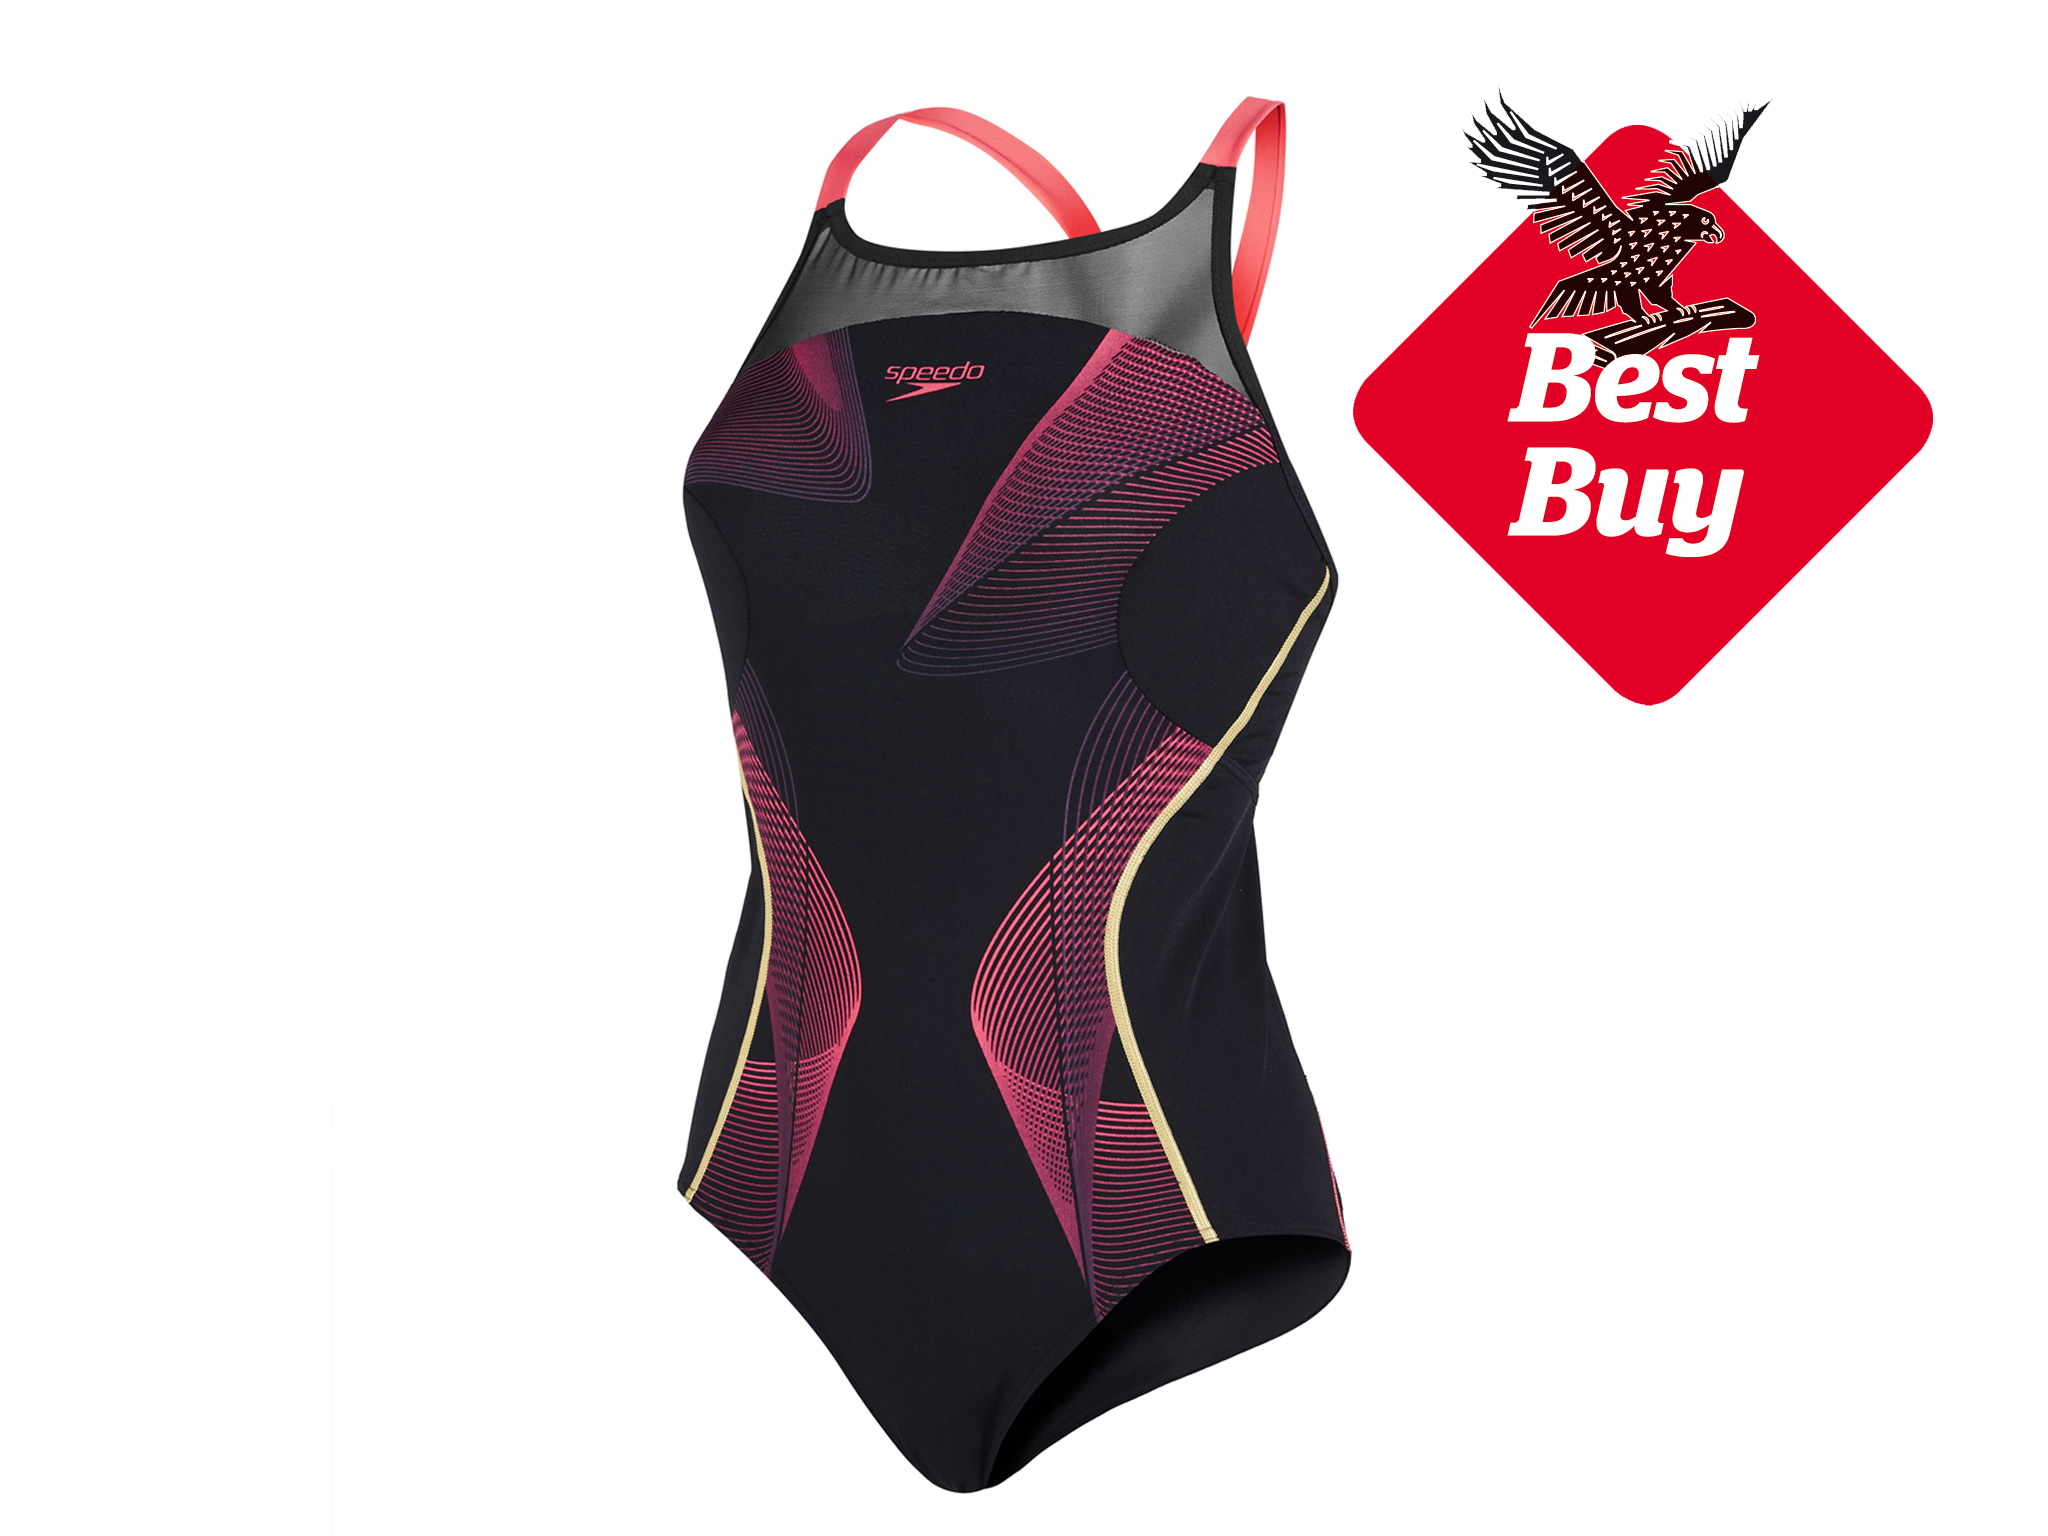 7 best swimsuits for women | The Independent